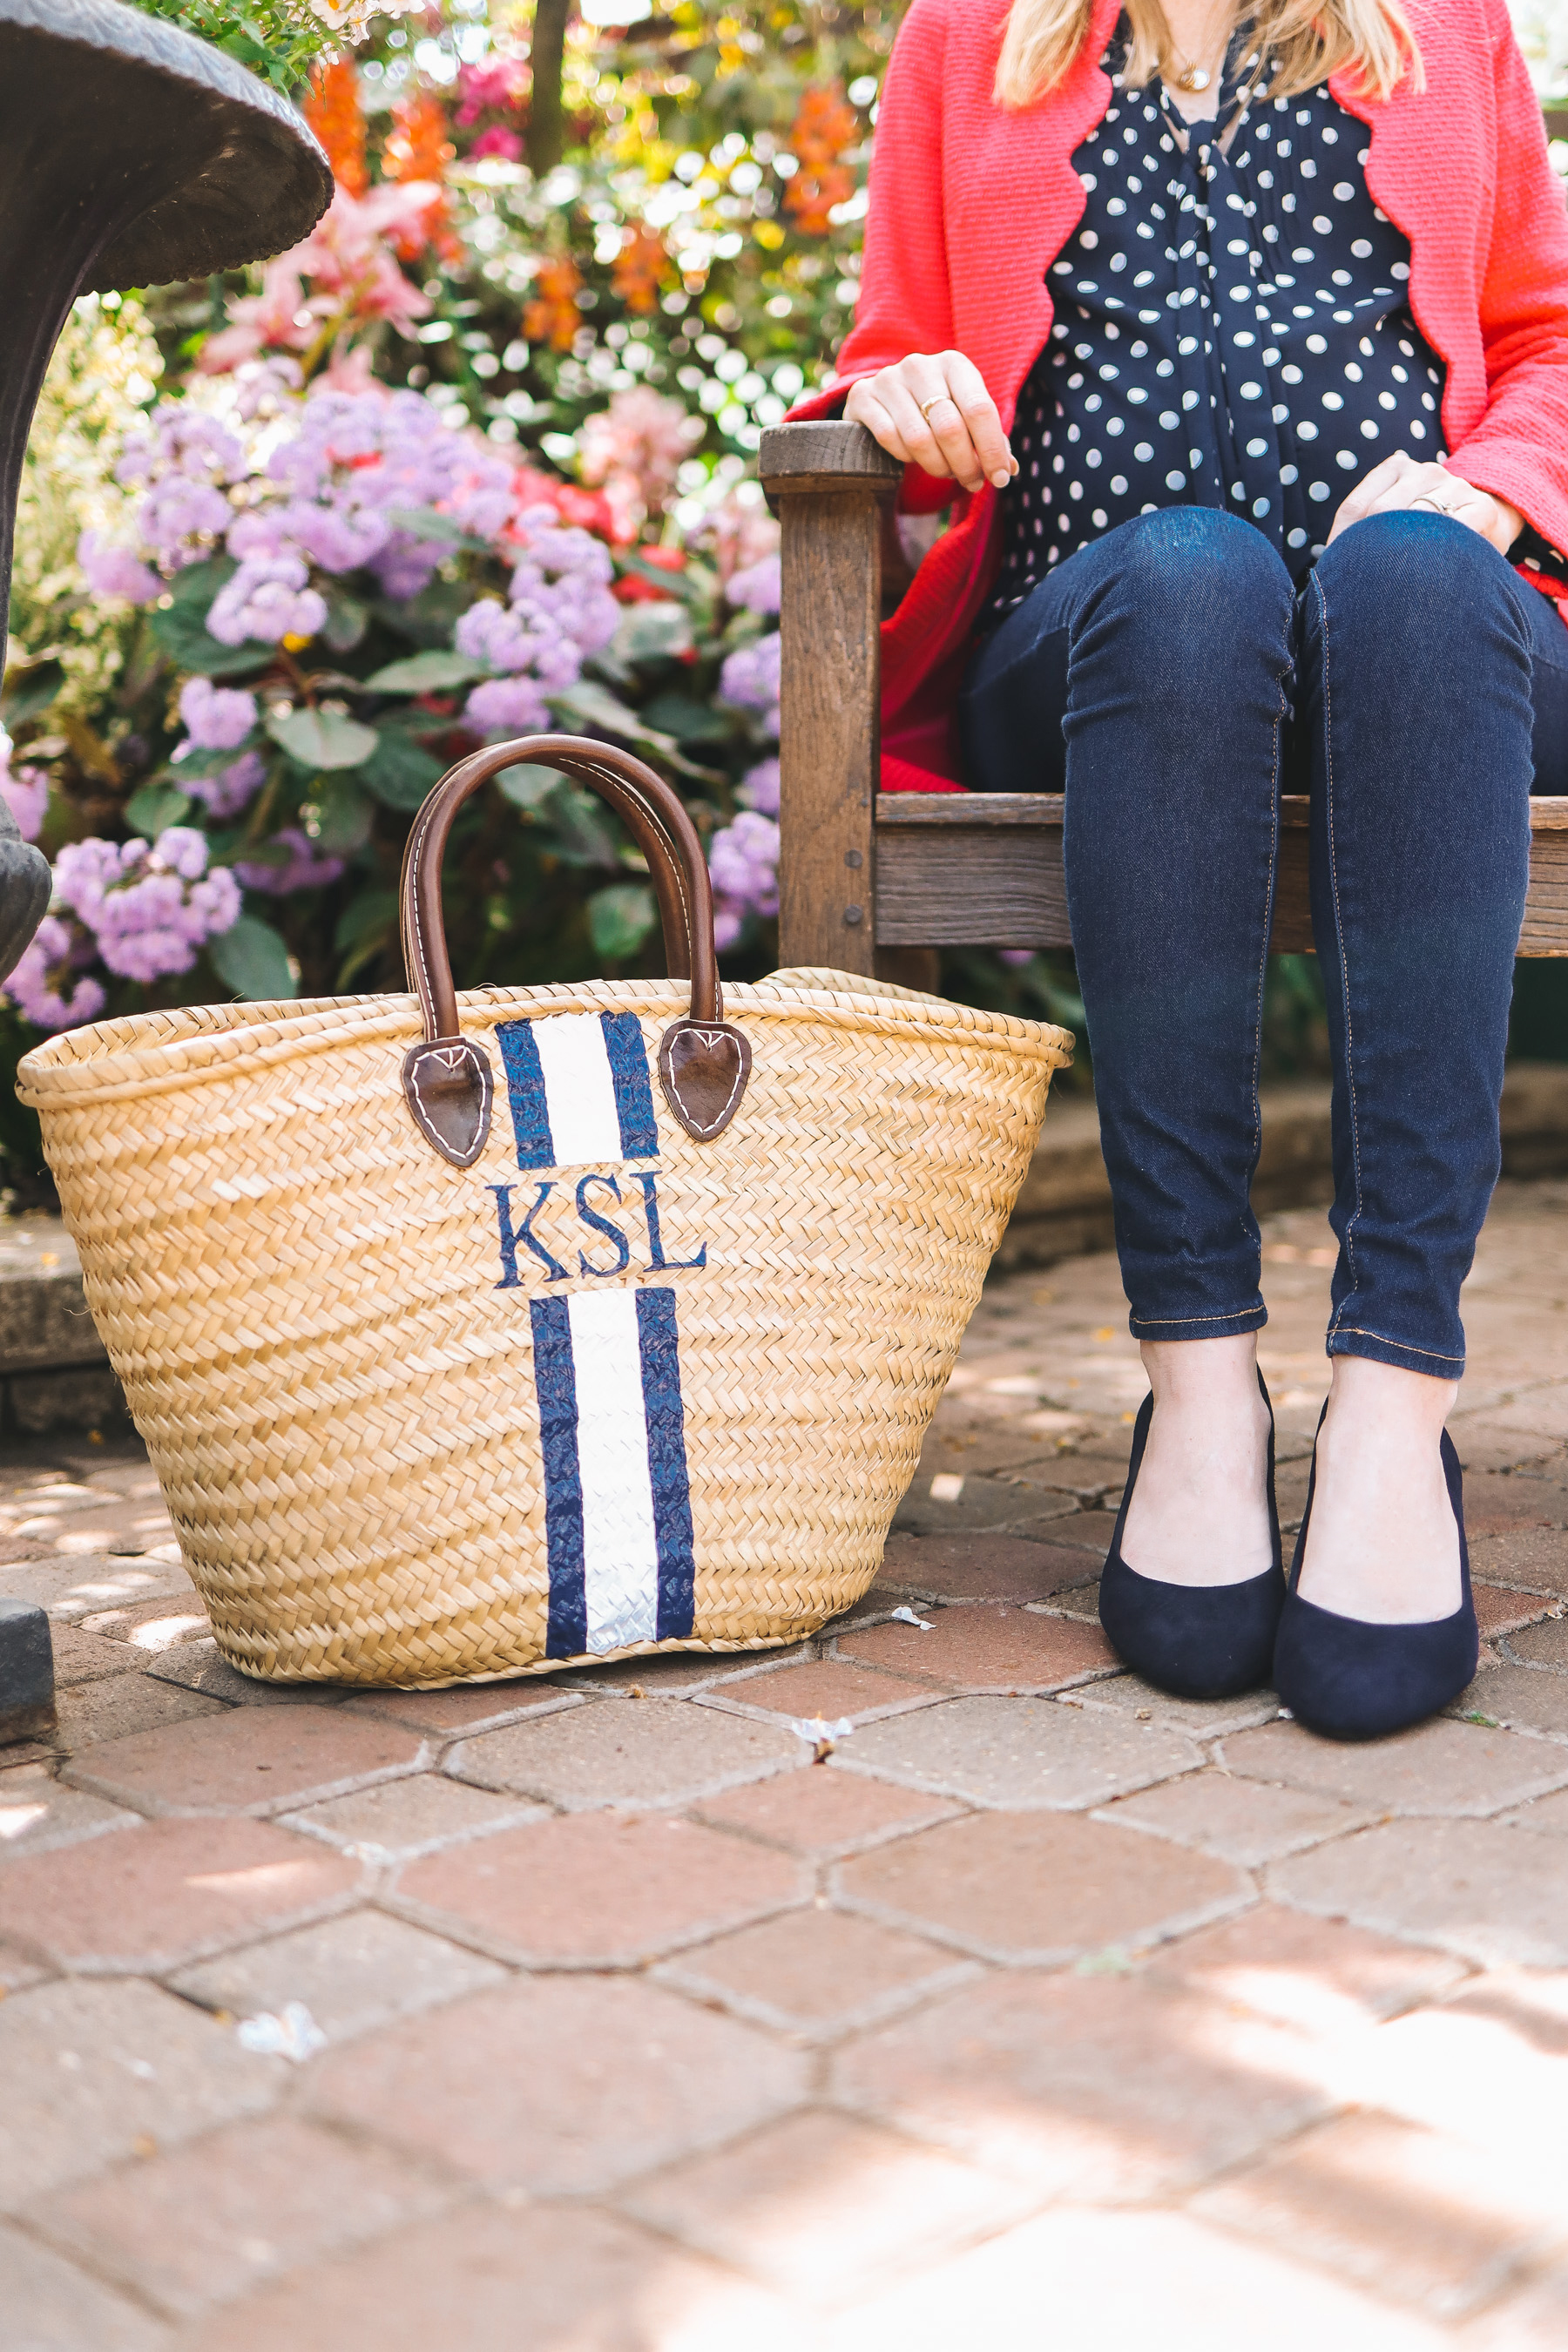 Kelly Larkin's outfit details: Evolve Navy Pumps c/o / Mark & Graham Hand-Painted Tote